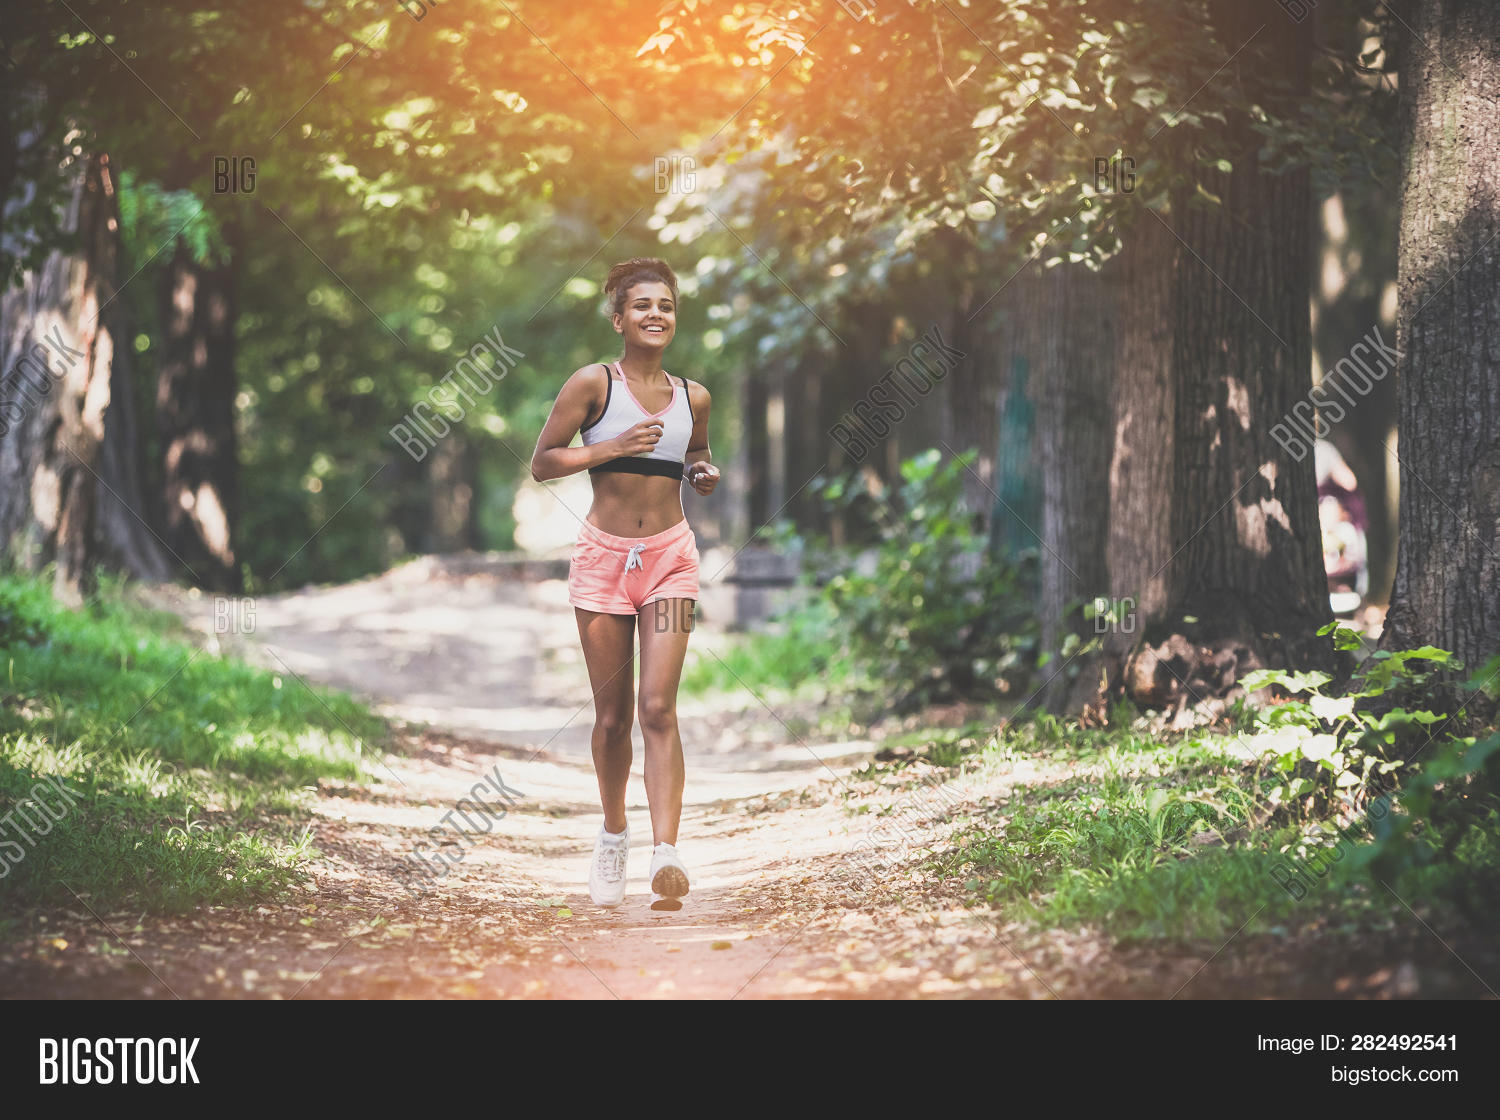 Young lady running. Woman runner running through the summer park road. Workout in a Park. Beautiful fit Girl. Fitness model outdoors. Weight Loss